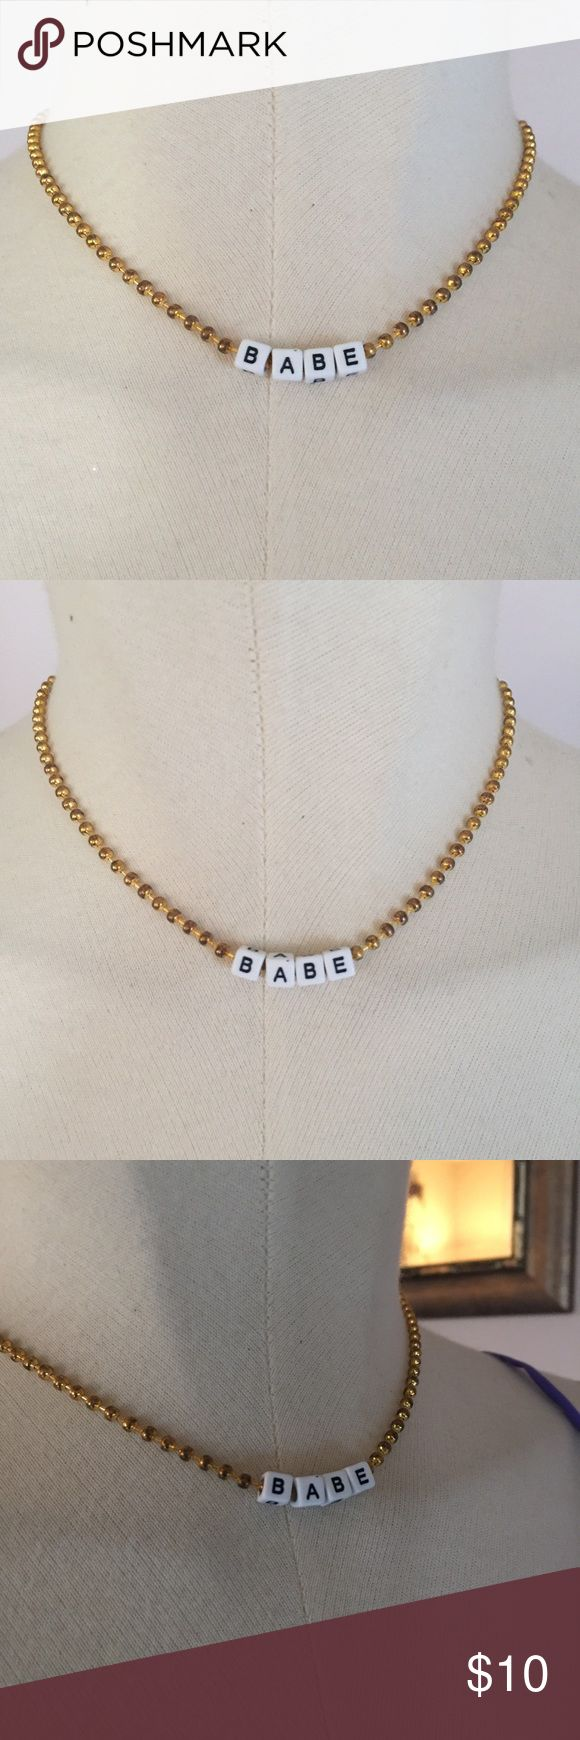 """Grunge 90's Style Gold Raver Babe Choker New Gold ball chain choker with the word """"Babe"""" on front. New and never worn. Urban Outfitters Jewelry Necklaces"""